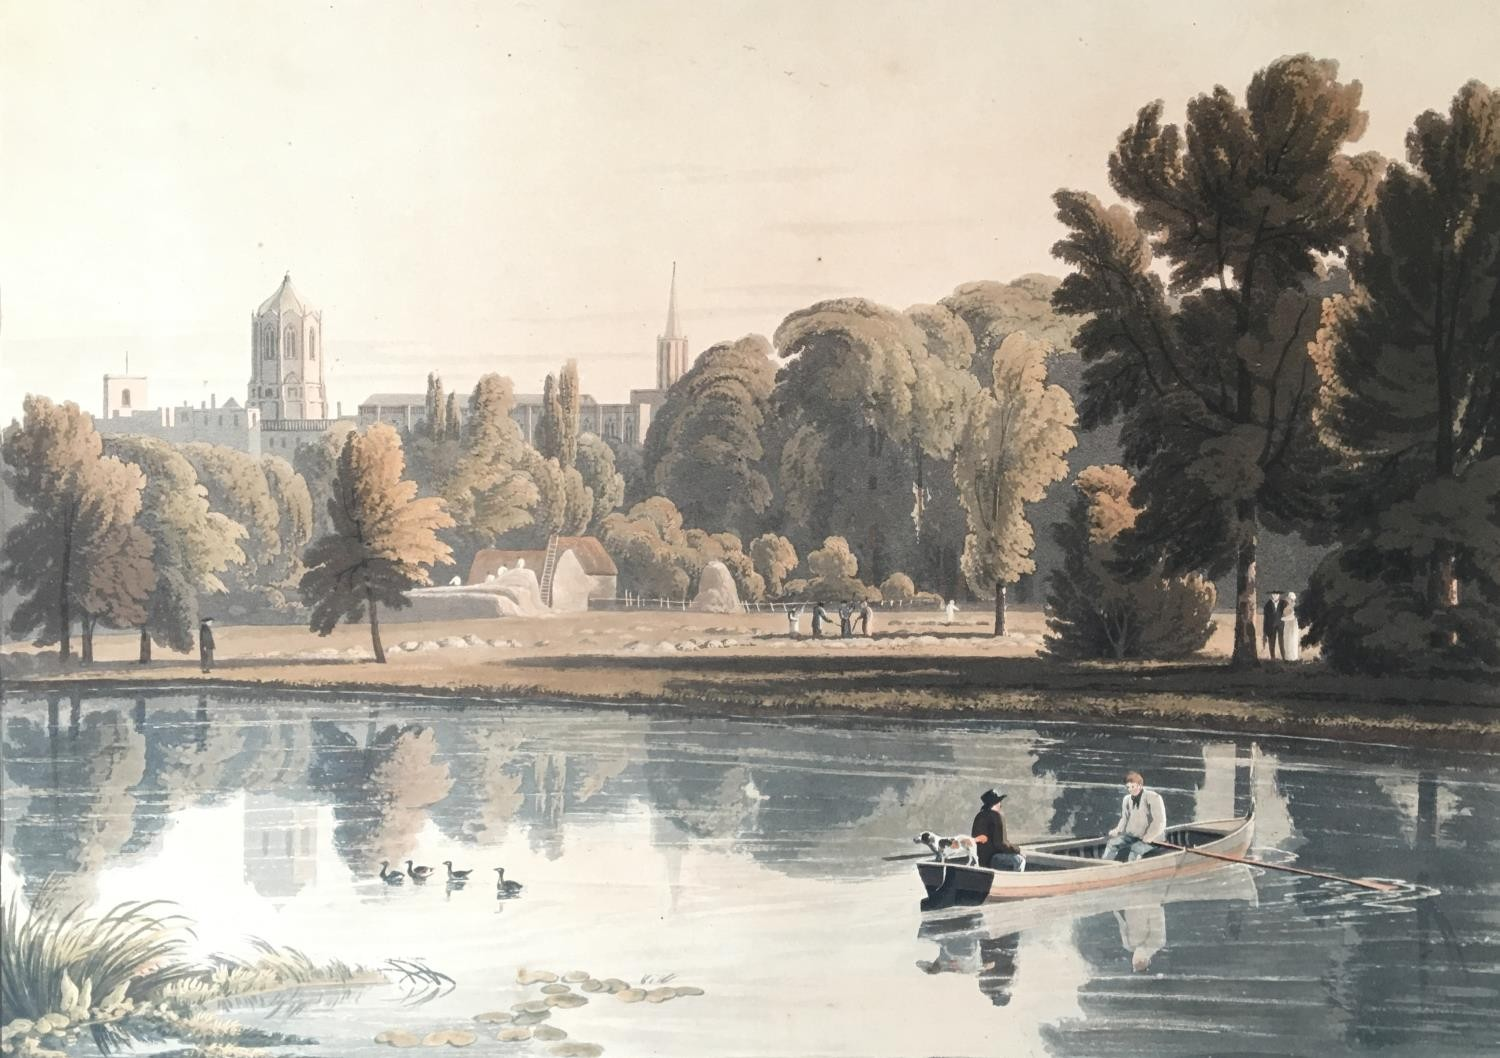 A collection of ten 19th century chromolithographs after William Havell, 'An Island On The Thames - Image 8 of 10